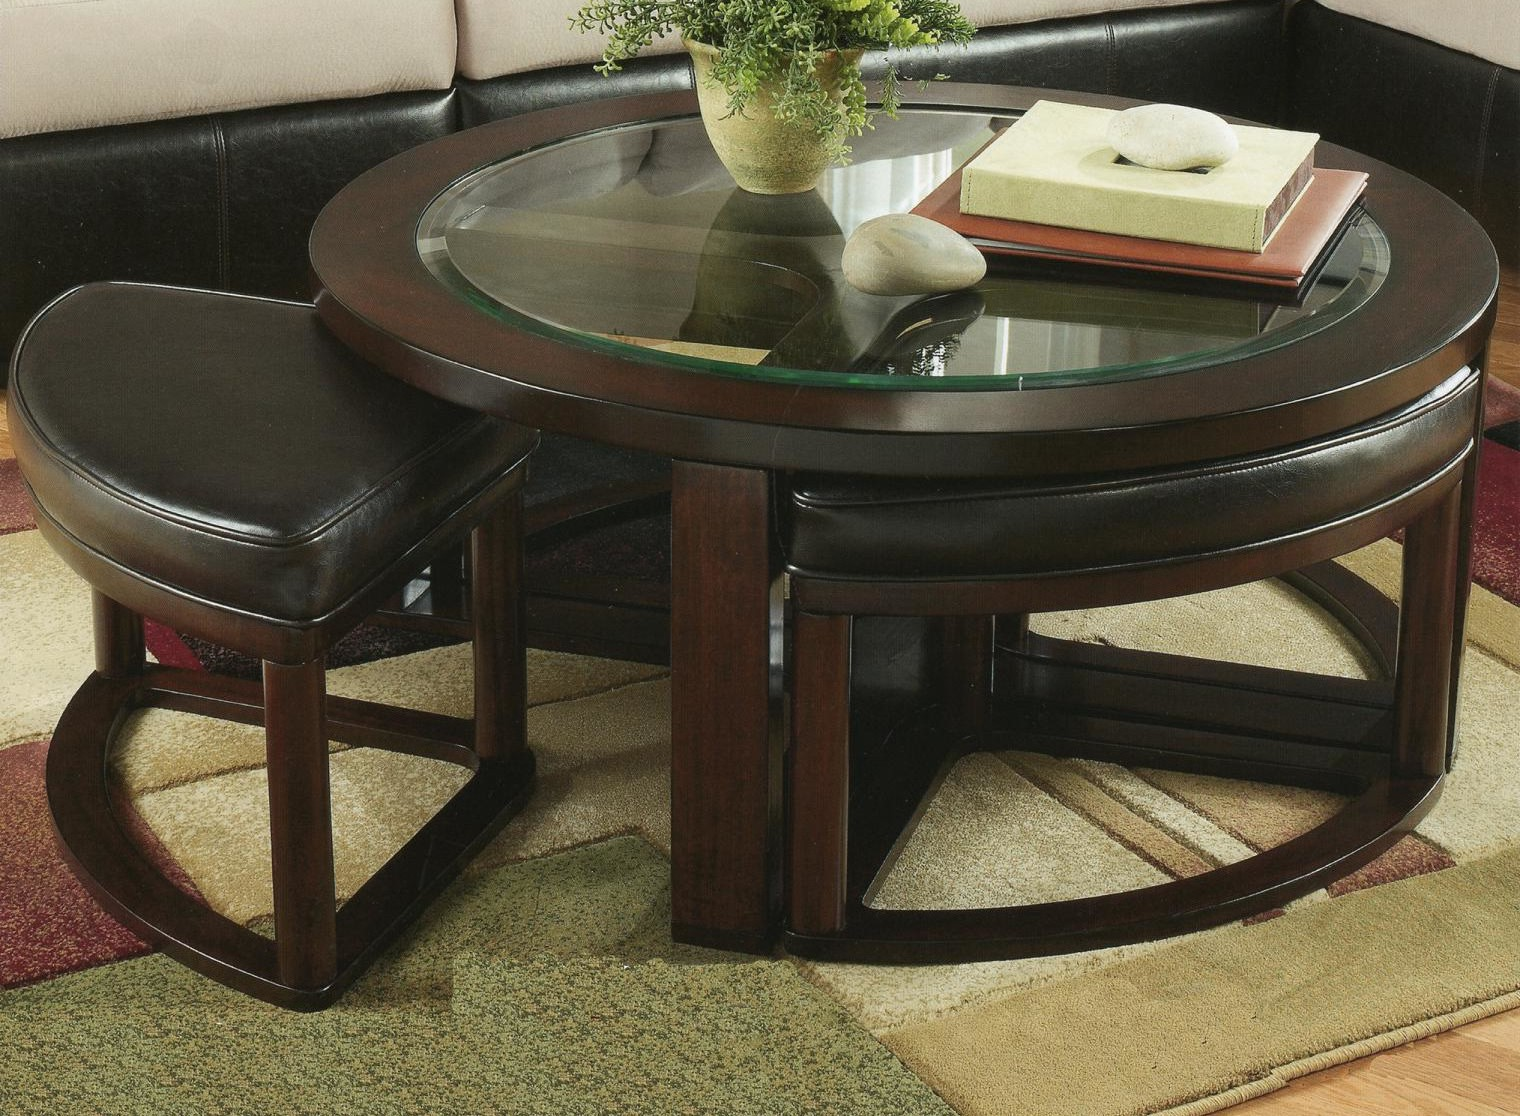 Coffee Table With Chairs Underneath : Roy Home Design